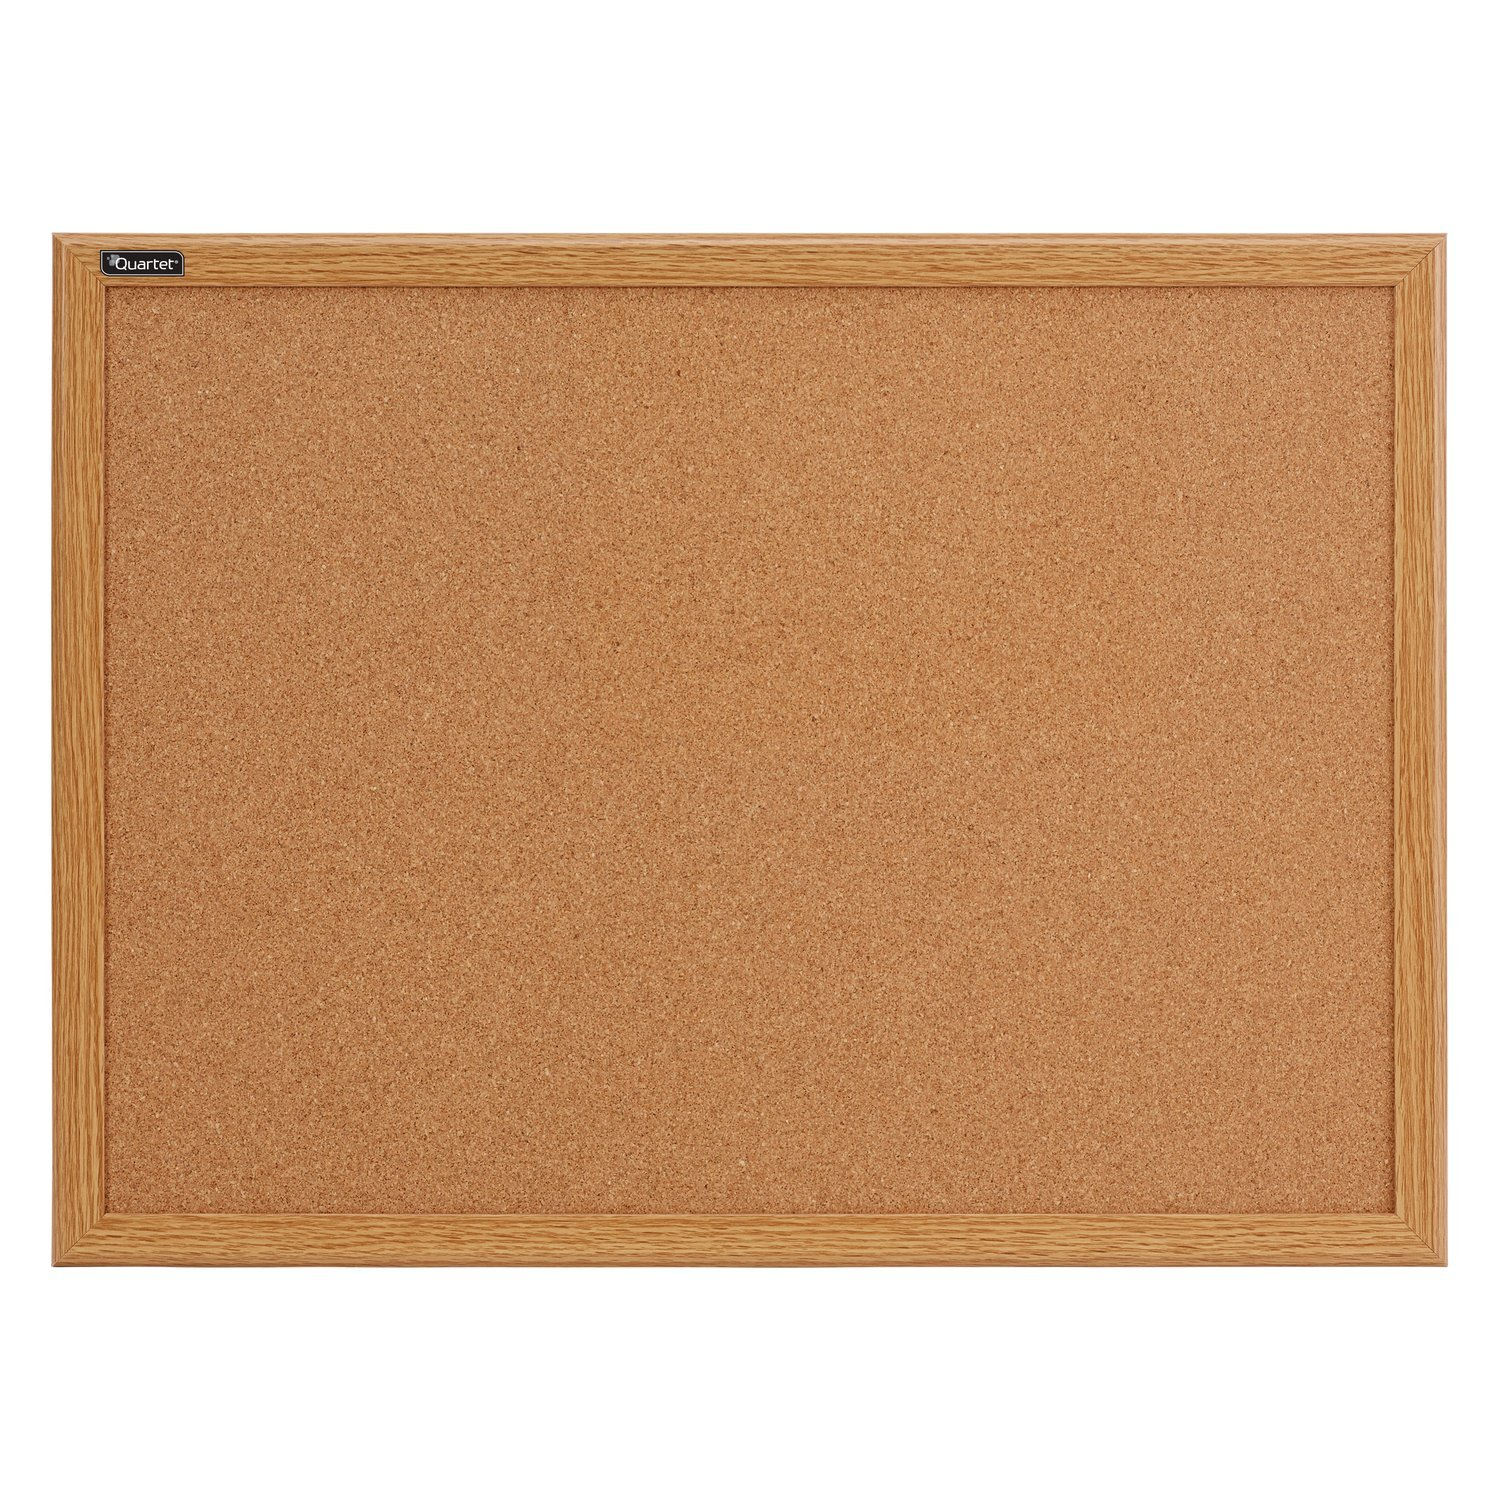 Quartet Cork Bulletin Board, 17 x 23 Inches, Oak Finish Frame (85212B)